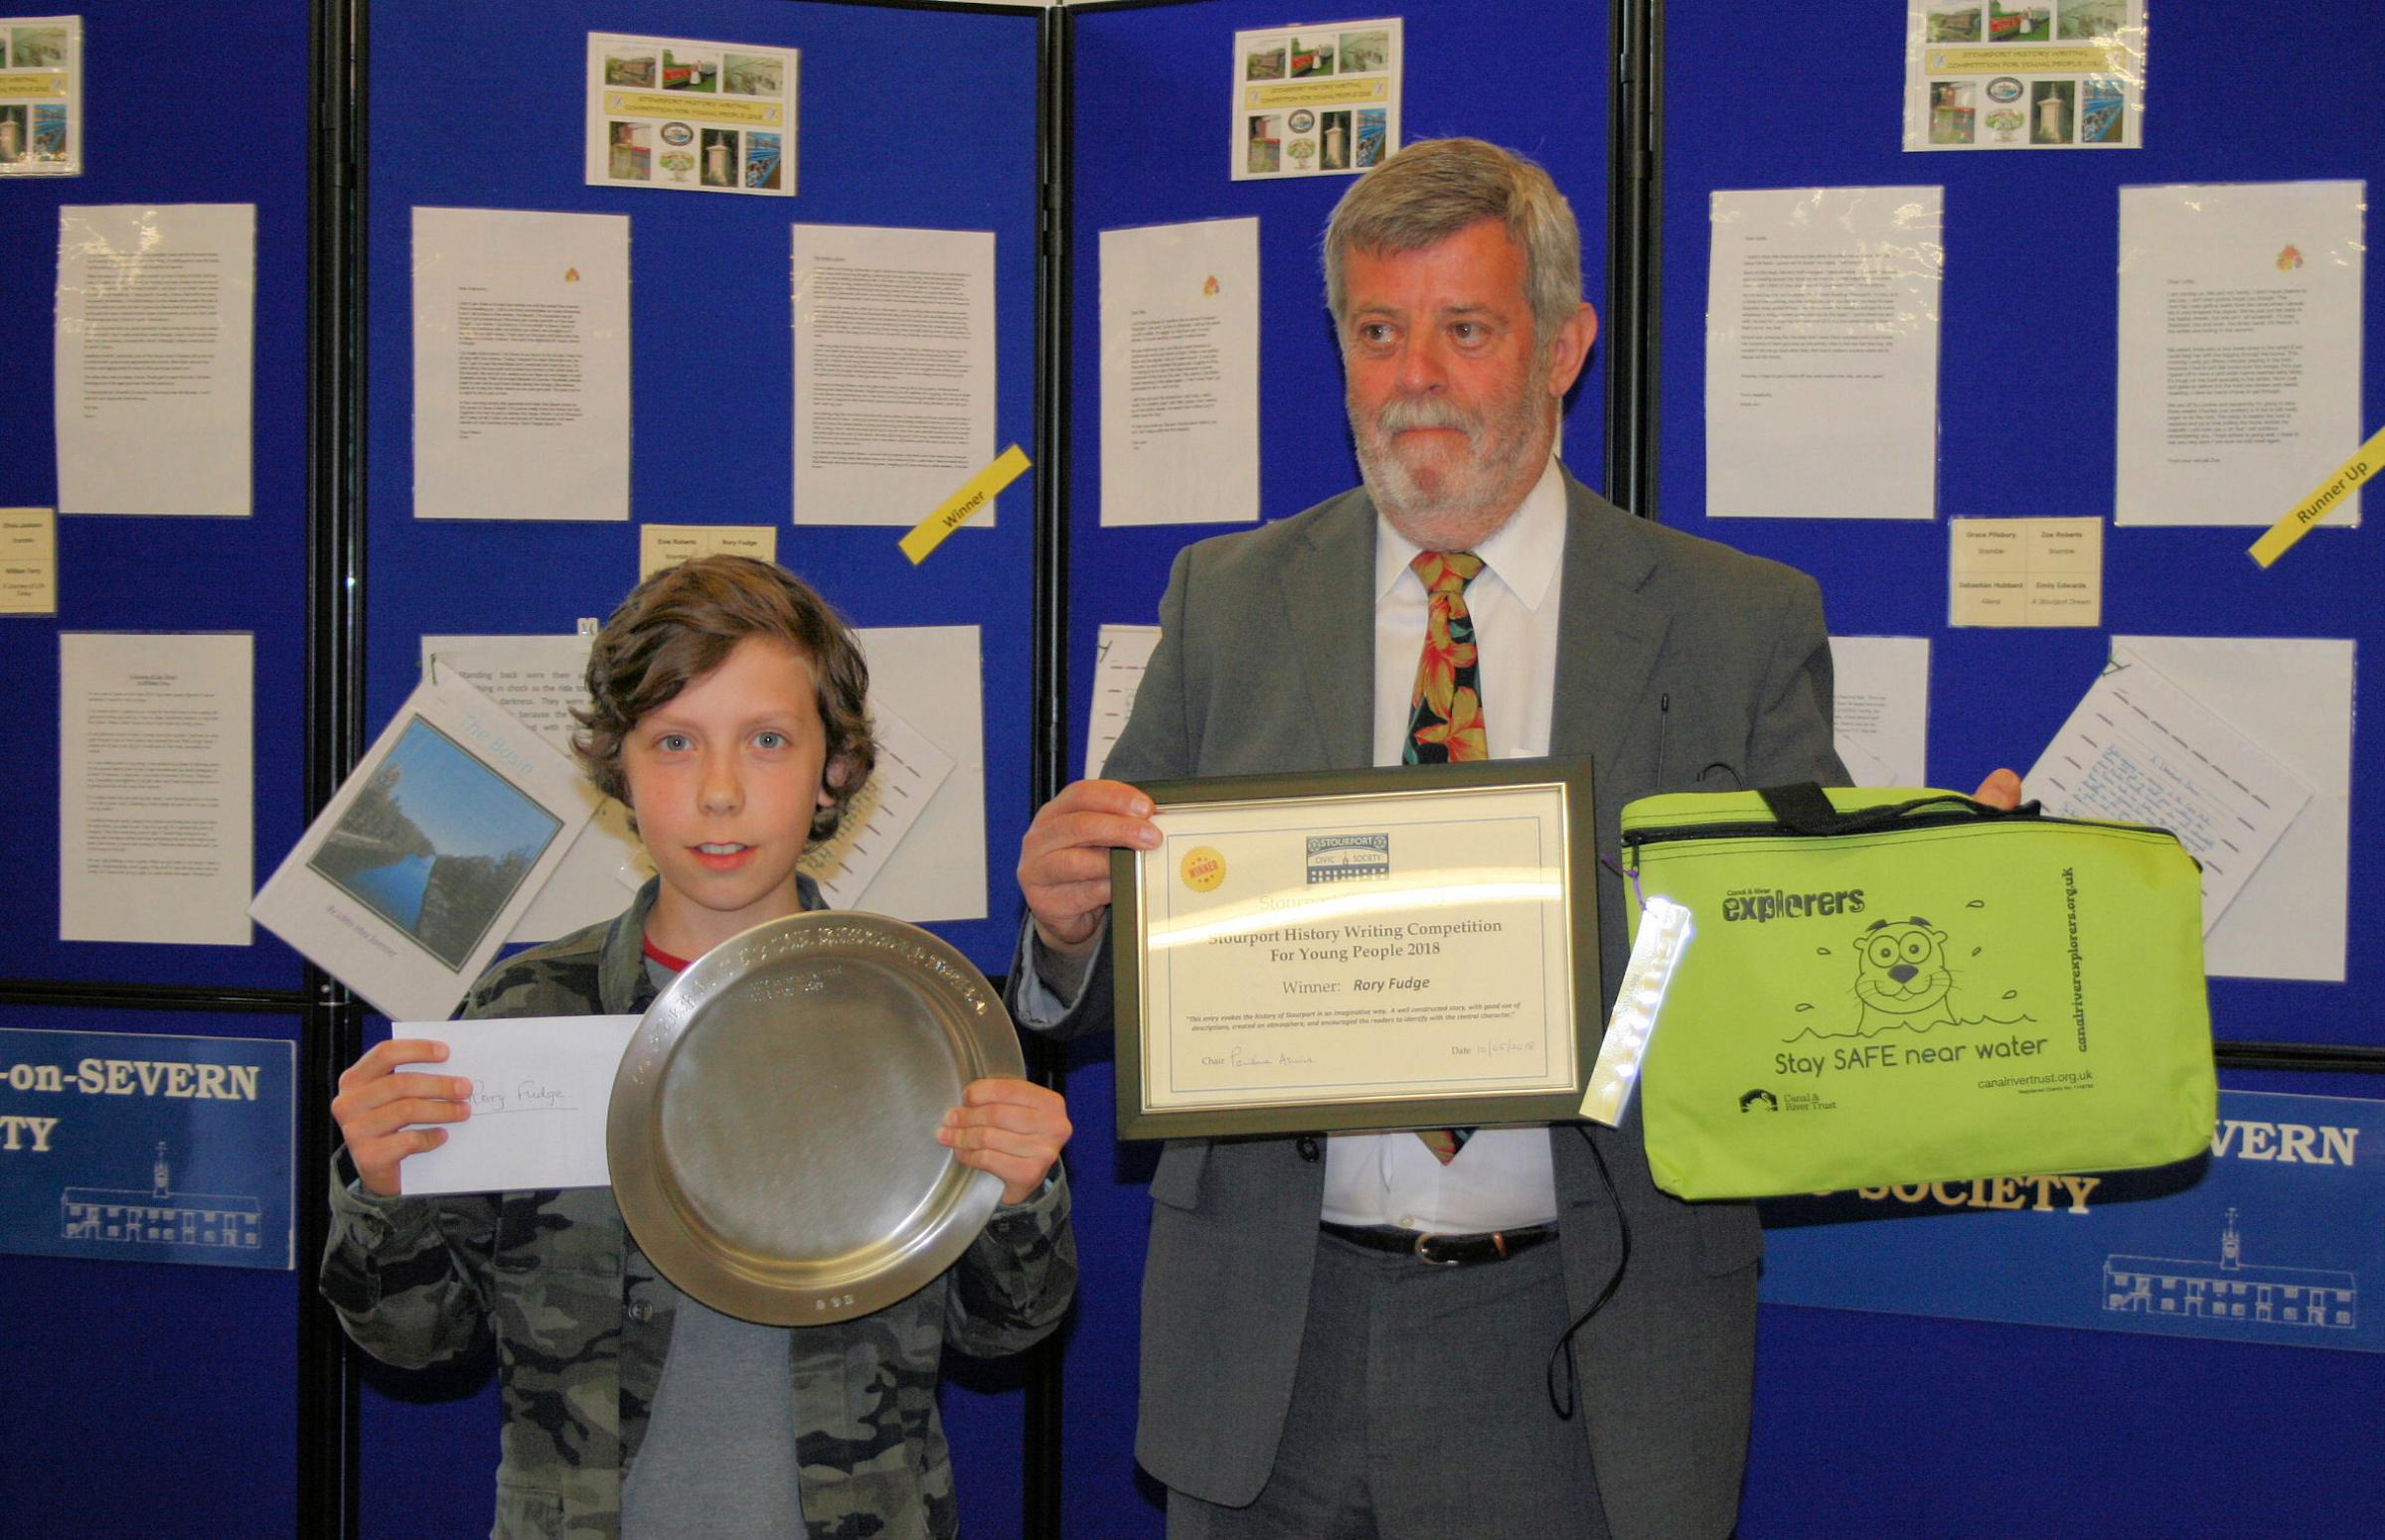 Competition winner Rory fudge with Civic Society president Will Scott